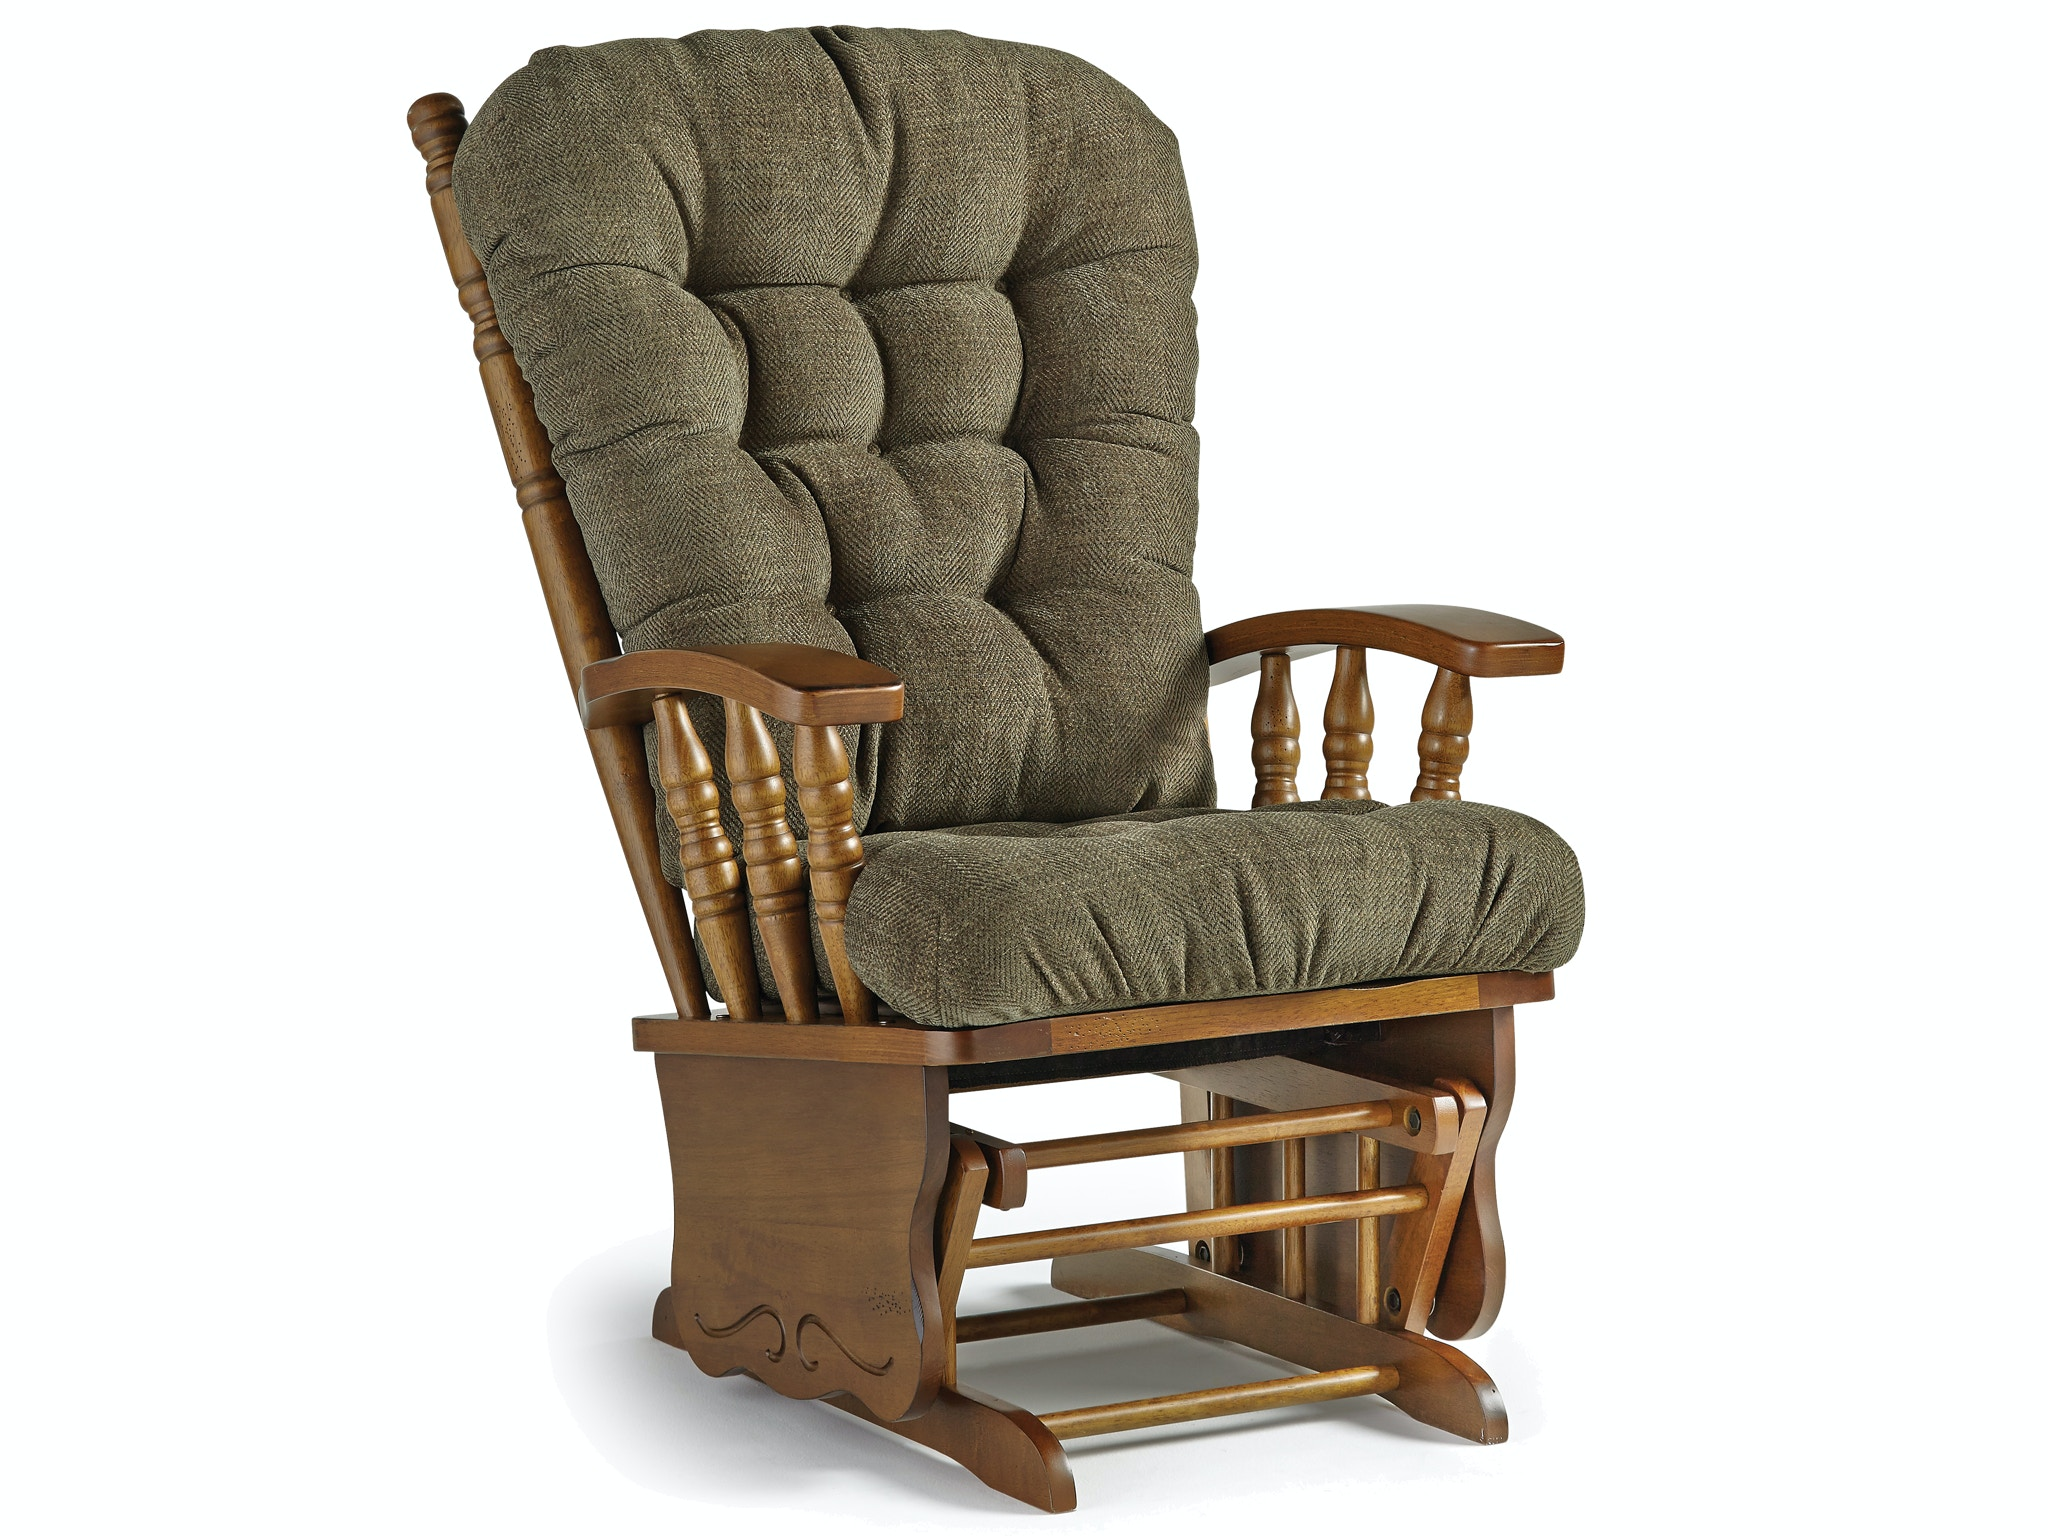 Best Home Furnishings Living Room Glide Rocker C5867   Carol House Furniture    Maryland Heights And Valley Park, MO